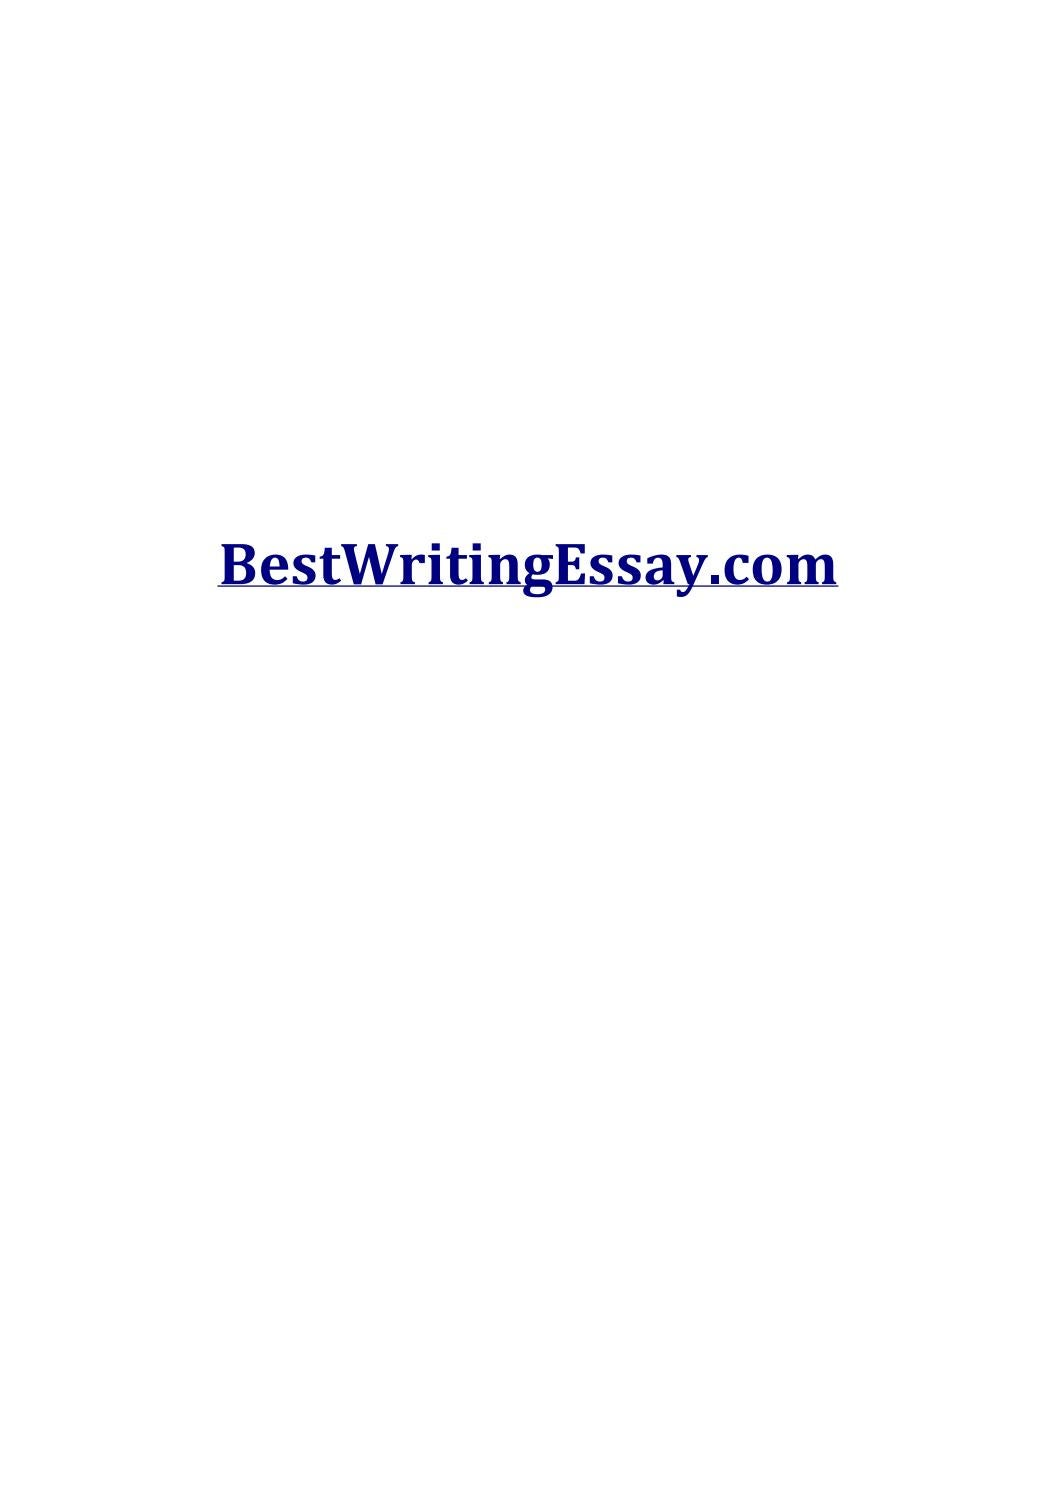 Process Essay Thesis  Help Writing Essay Paper also My Mother Essay In English How Many Types Of Essay In English By Cynthiasebnc  Issuu English Essay